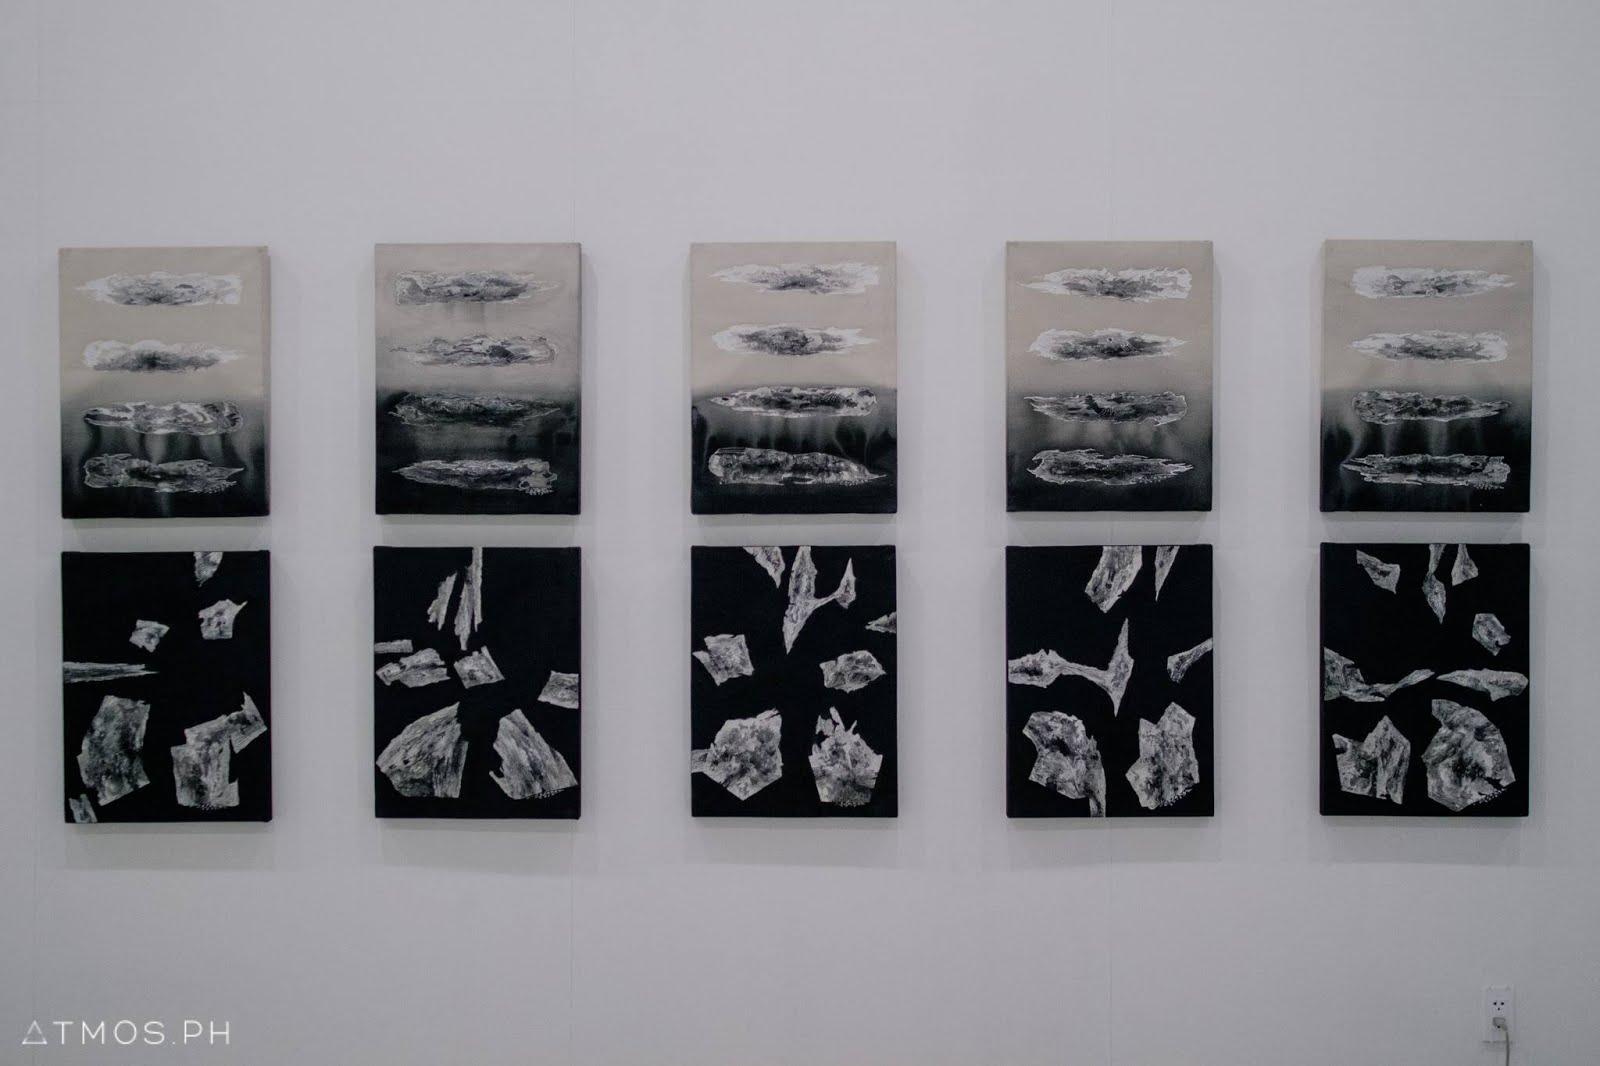 """Known for his advocacy-driven works, the Pinoy Icon 2011 - Juan Luna awardee opened his newest solo show entitled """"Habitat"""" on Saturday at gallery i in Iloilo City Proper. Art, Advocacy, Habitat, PG Zoluaga, Iloilo, Environment, Community, Activism, Commentary, Fine Arts, ViVa ExCon, gallery i"""